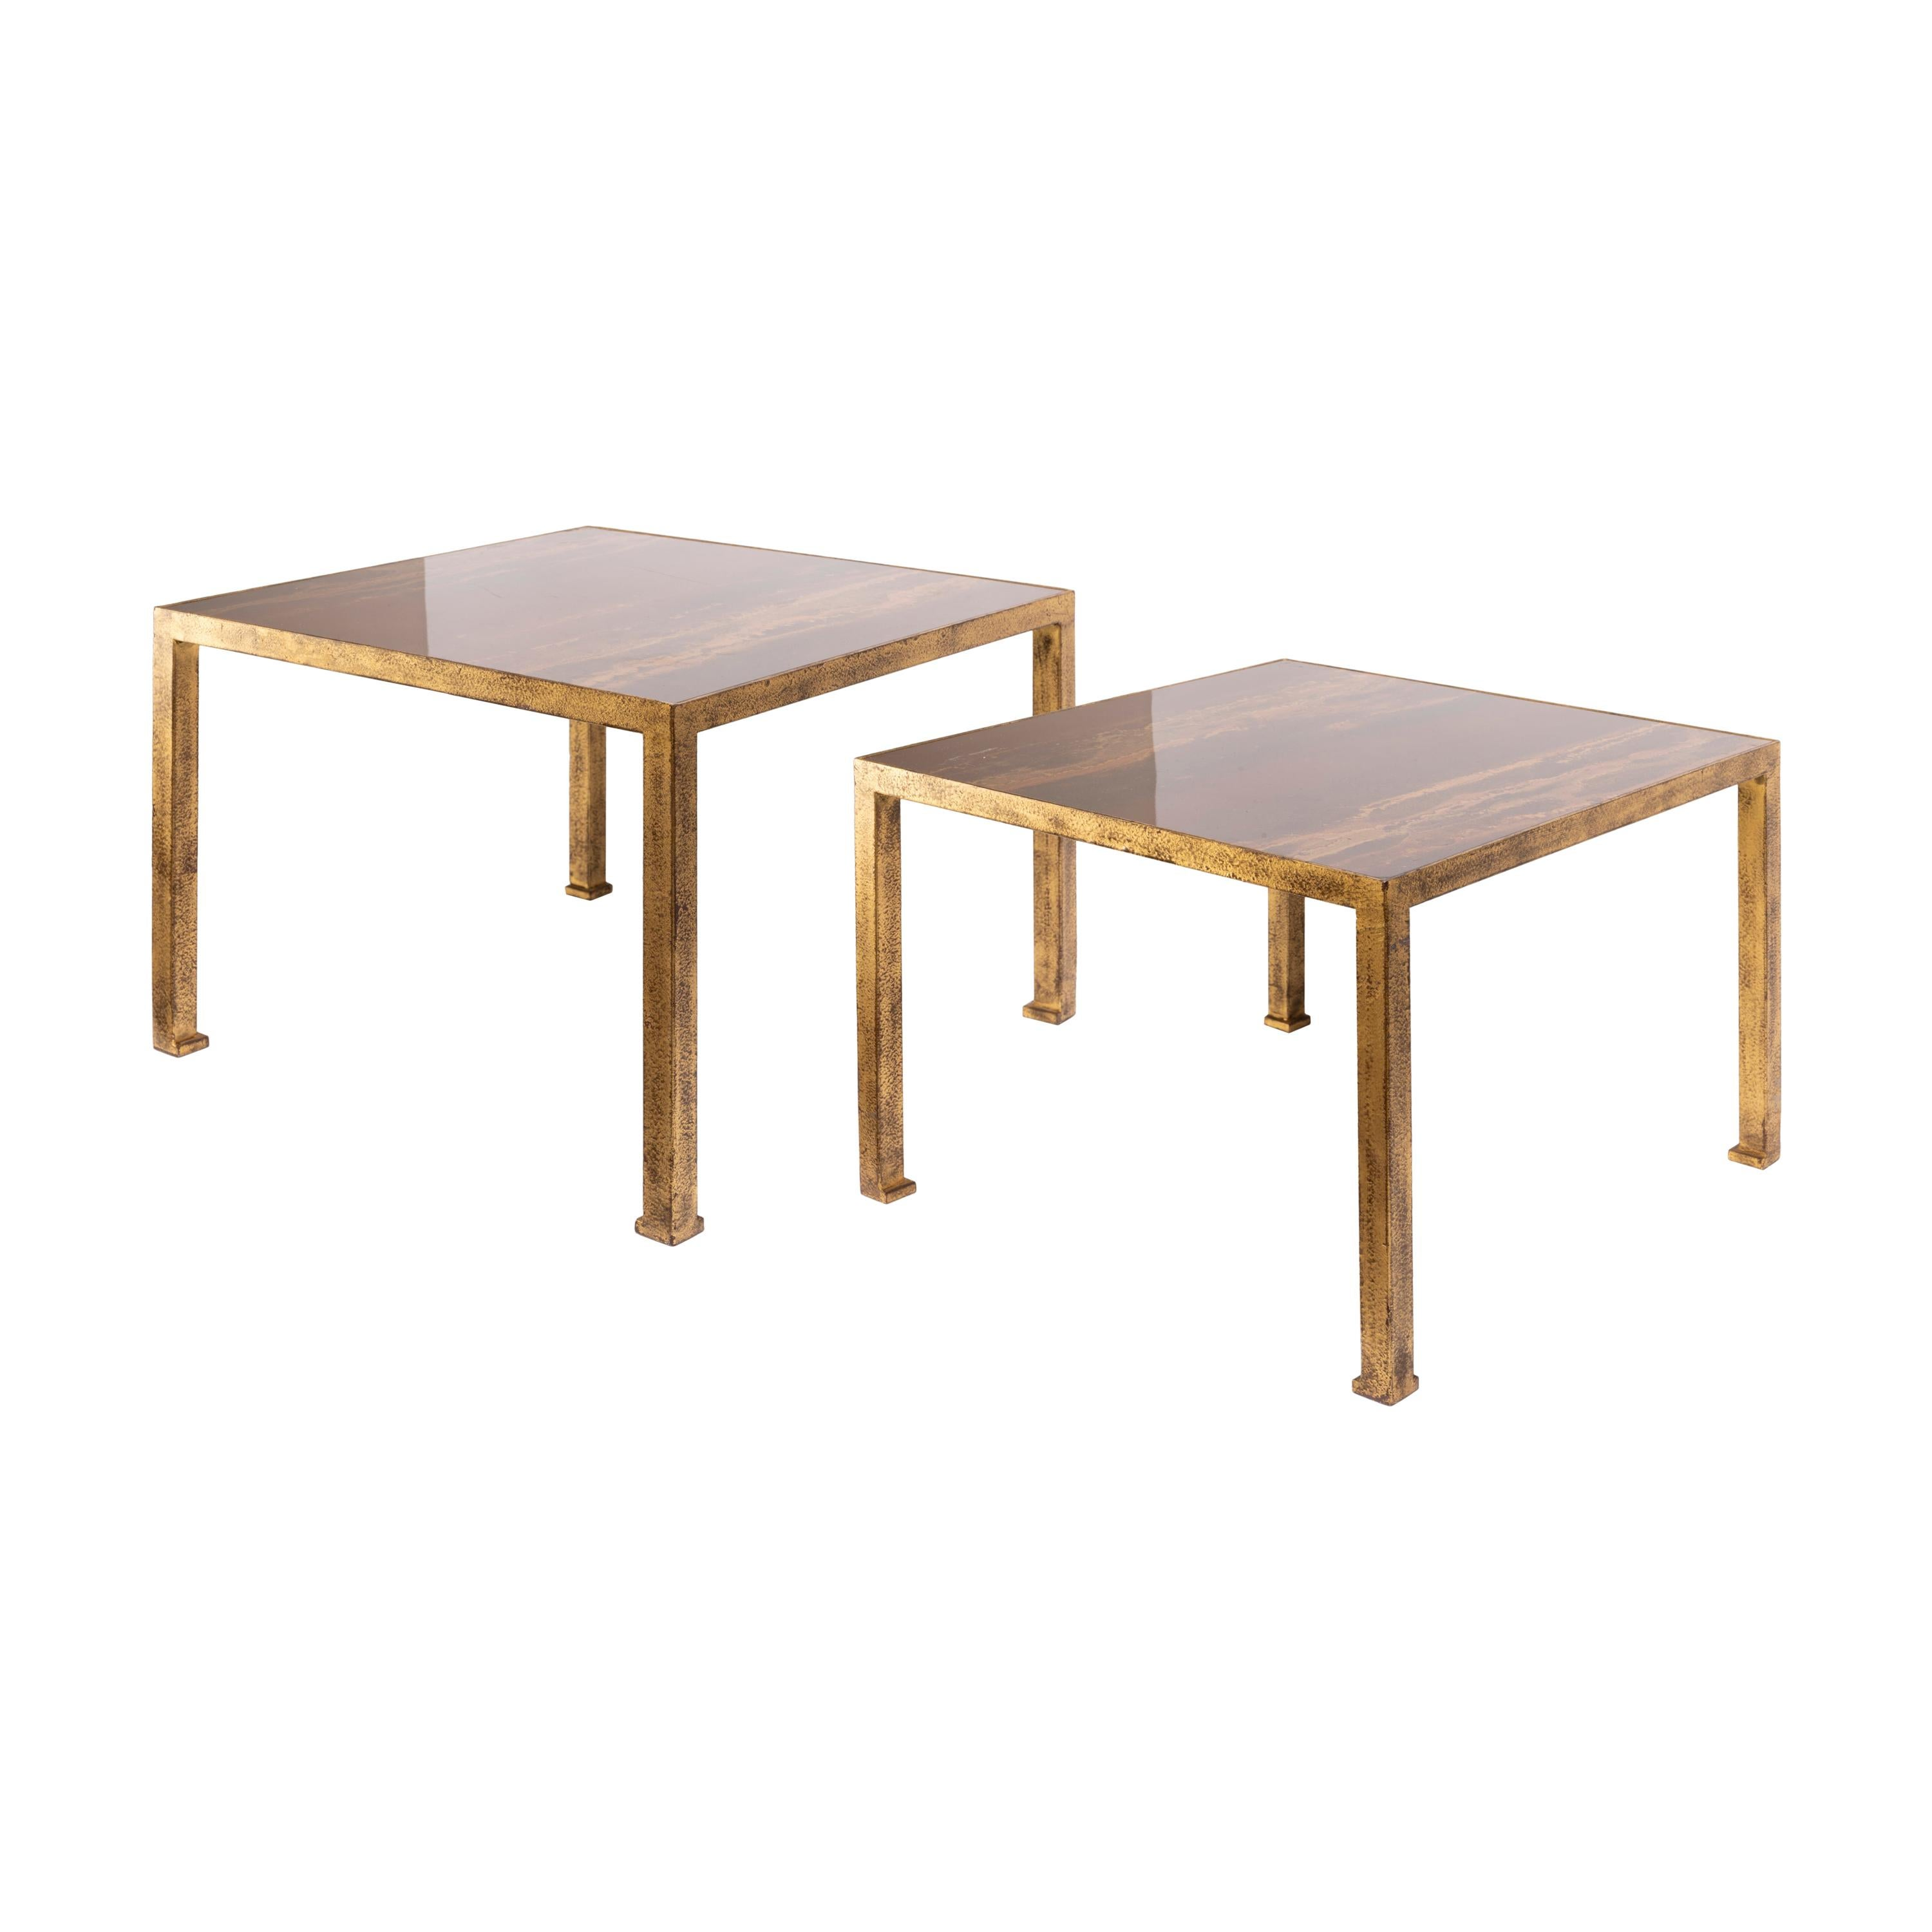 Pair of Square End Tables, by Maison Jansen